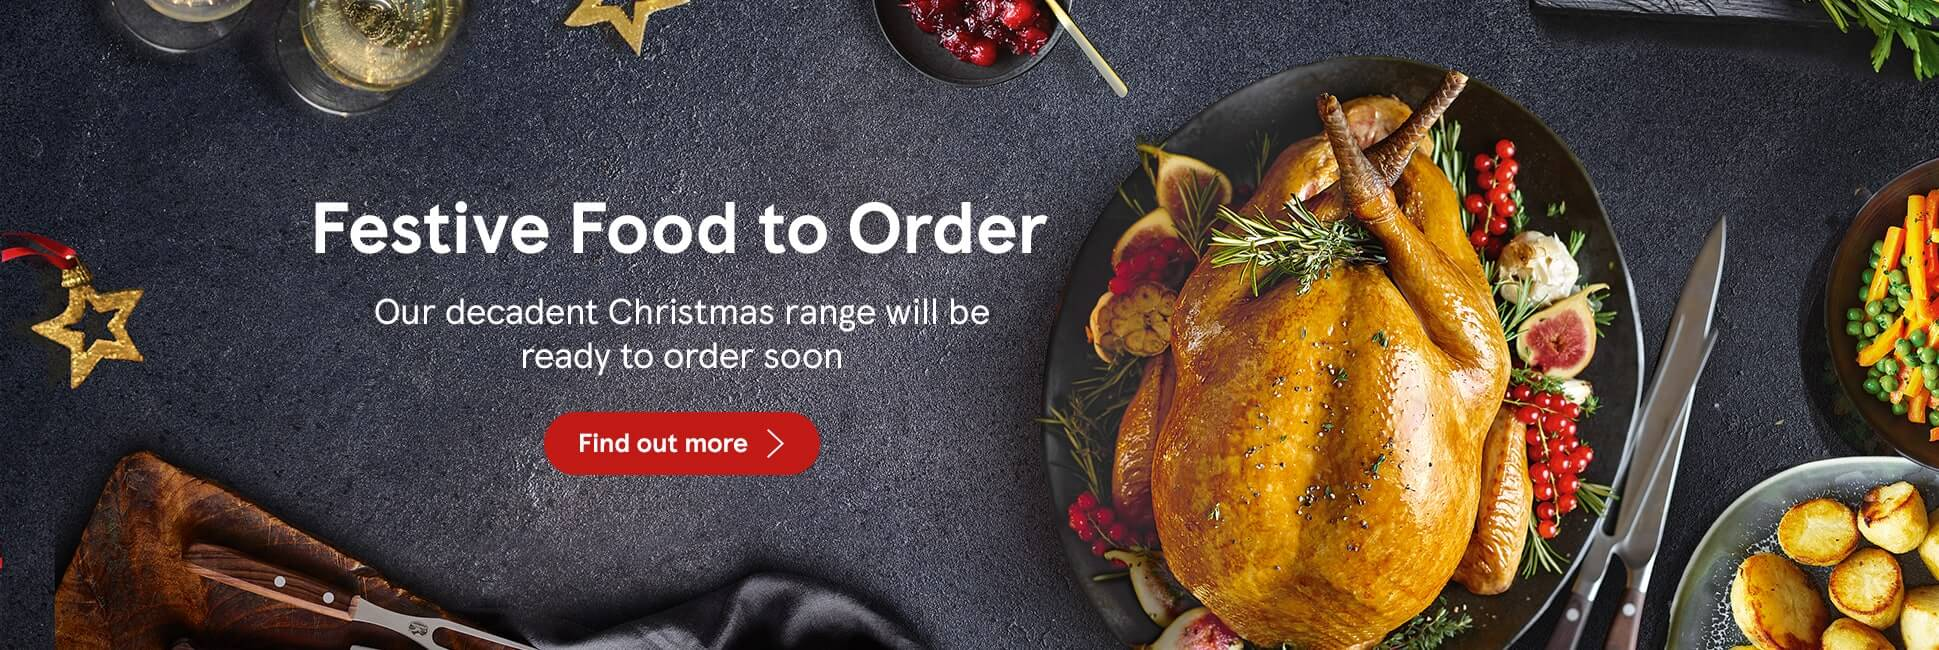 Our decadent Christmas food range will be ready to order soon. Browse now to find out more.